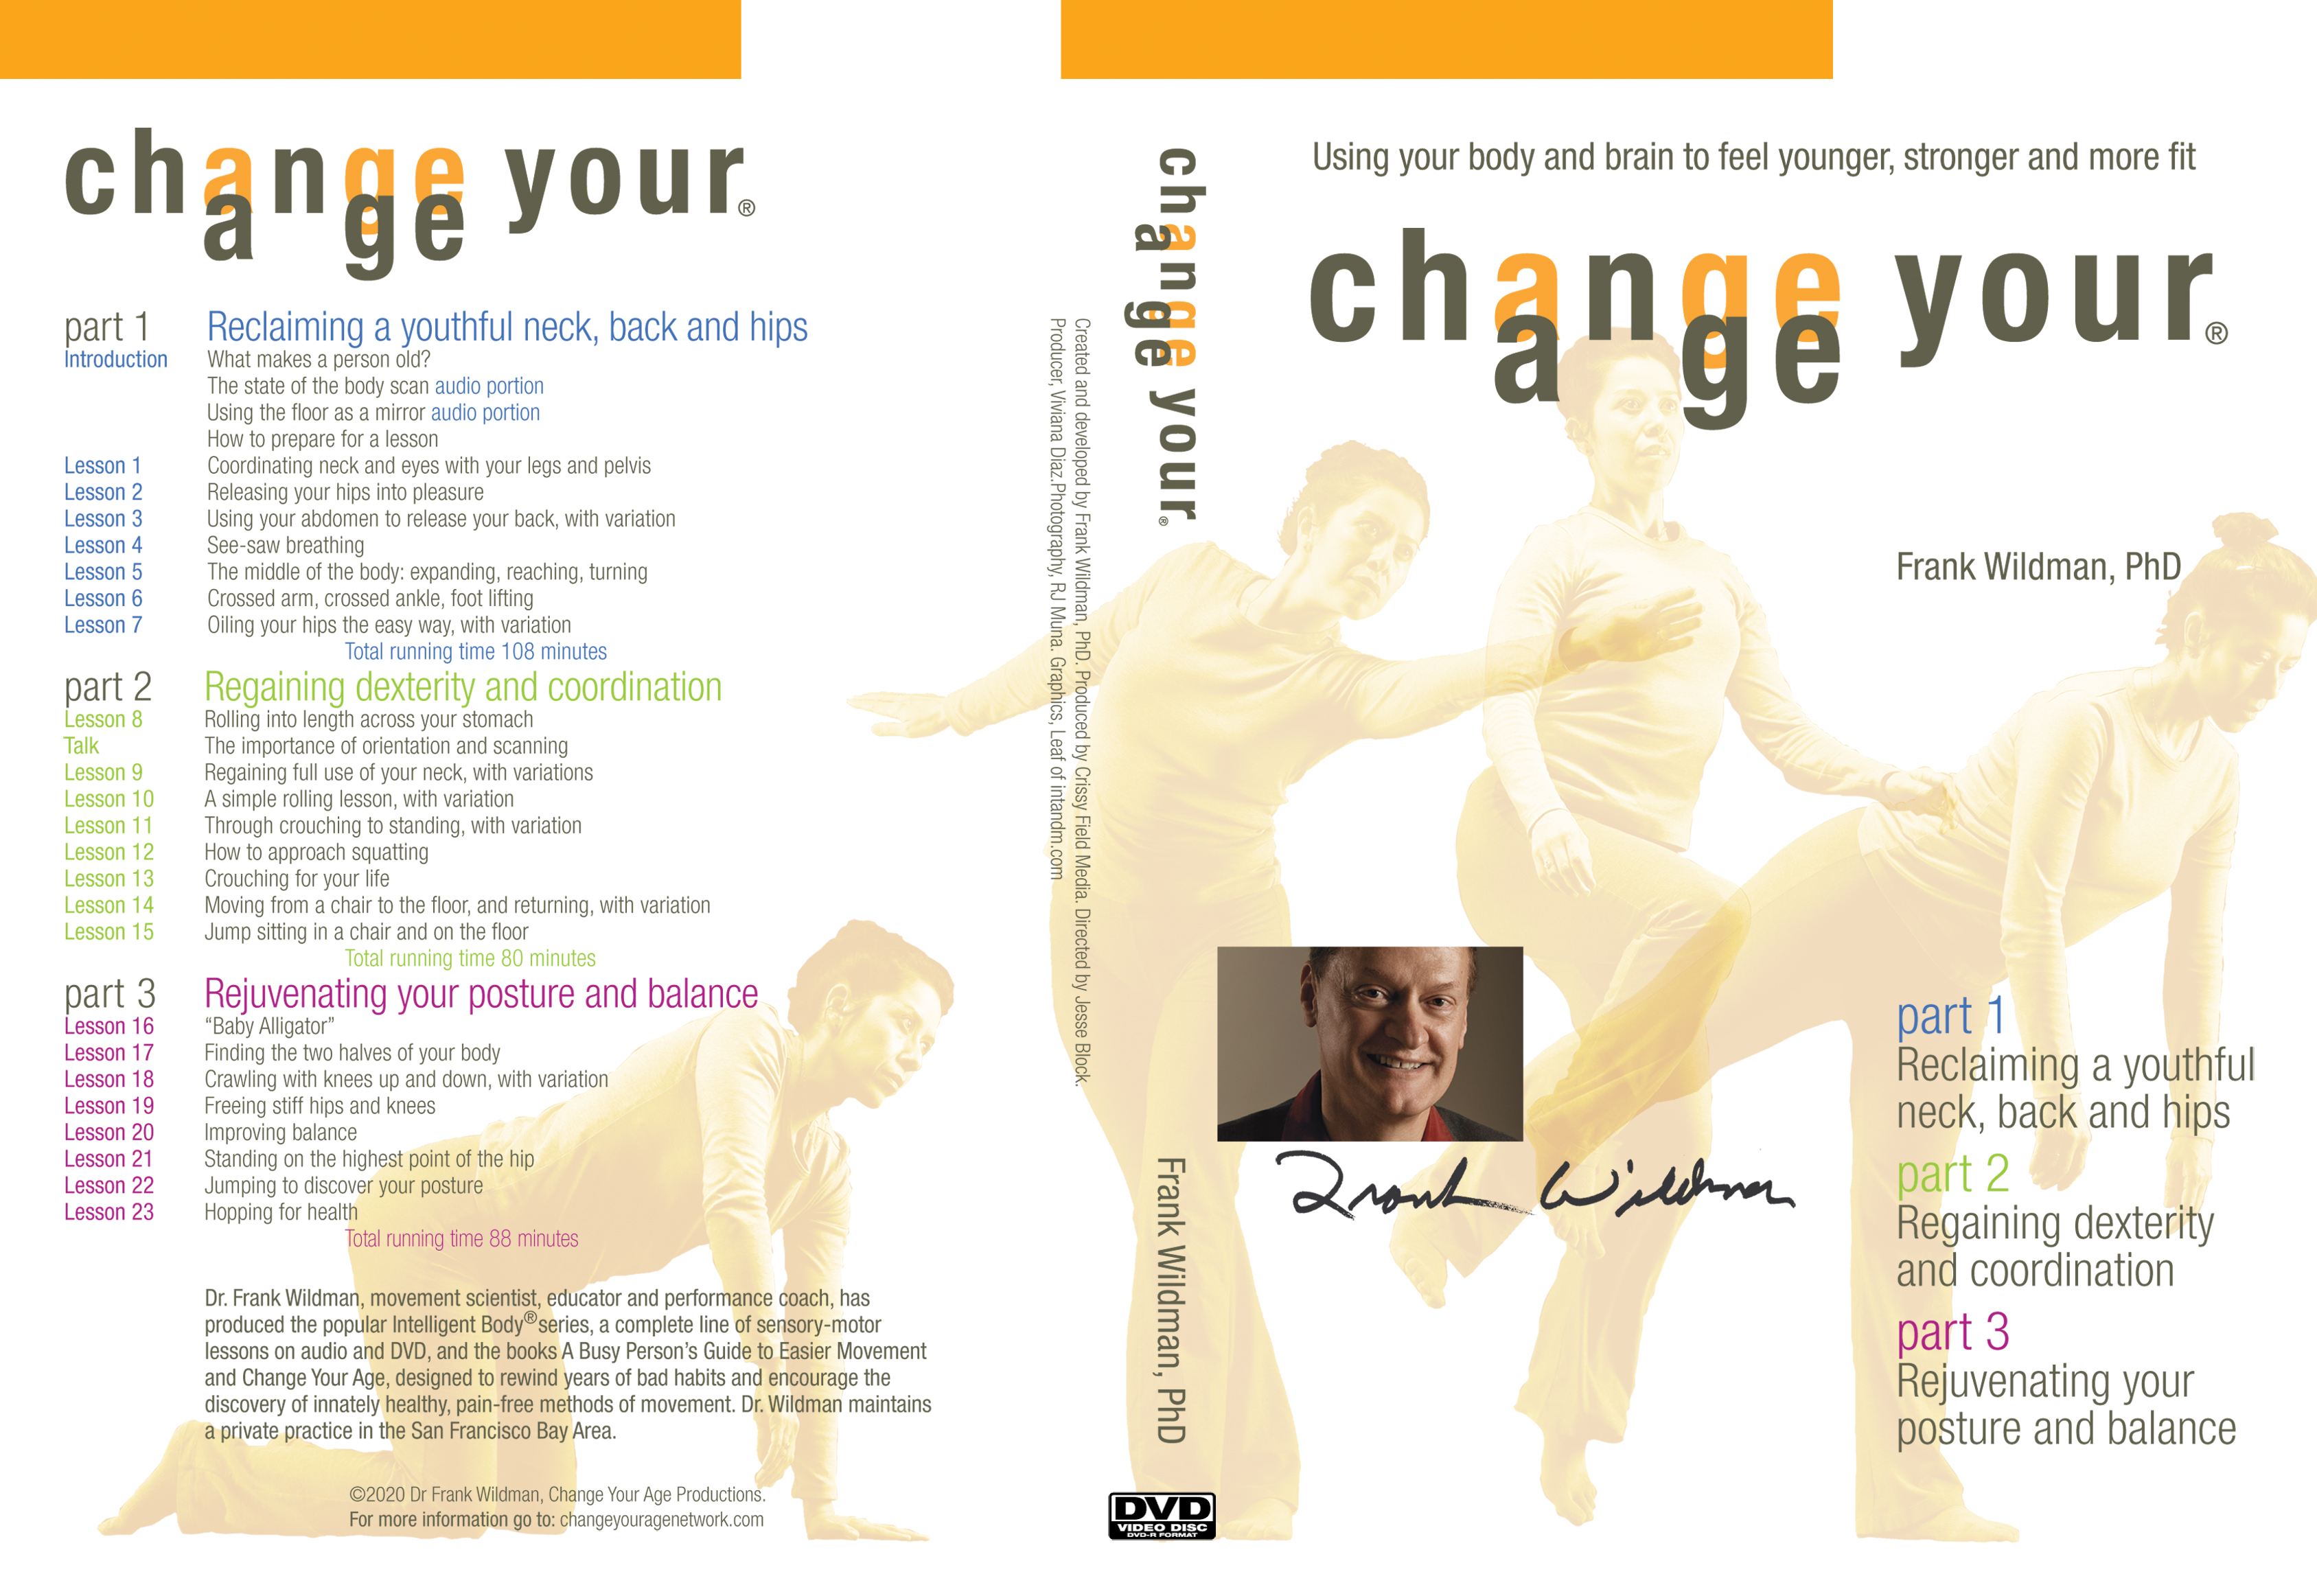 Change Your Age DVD cover